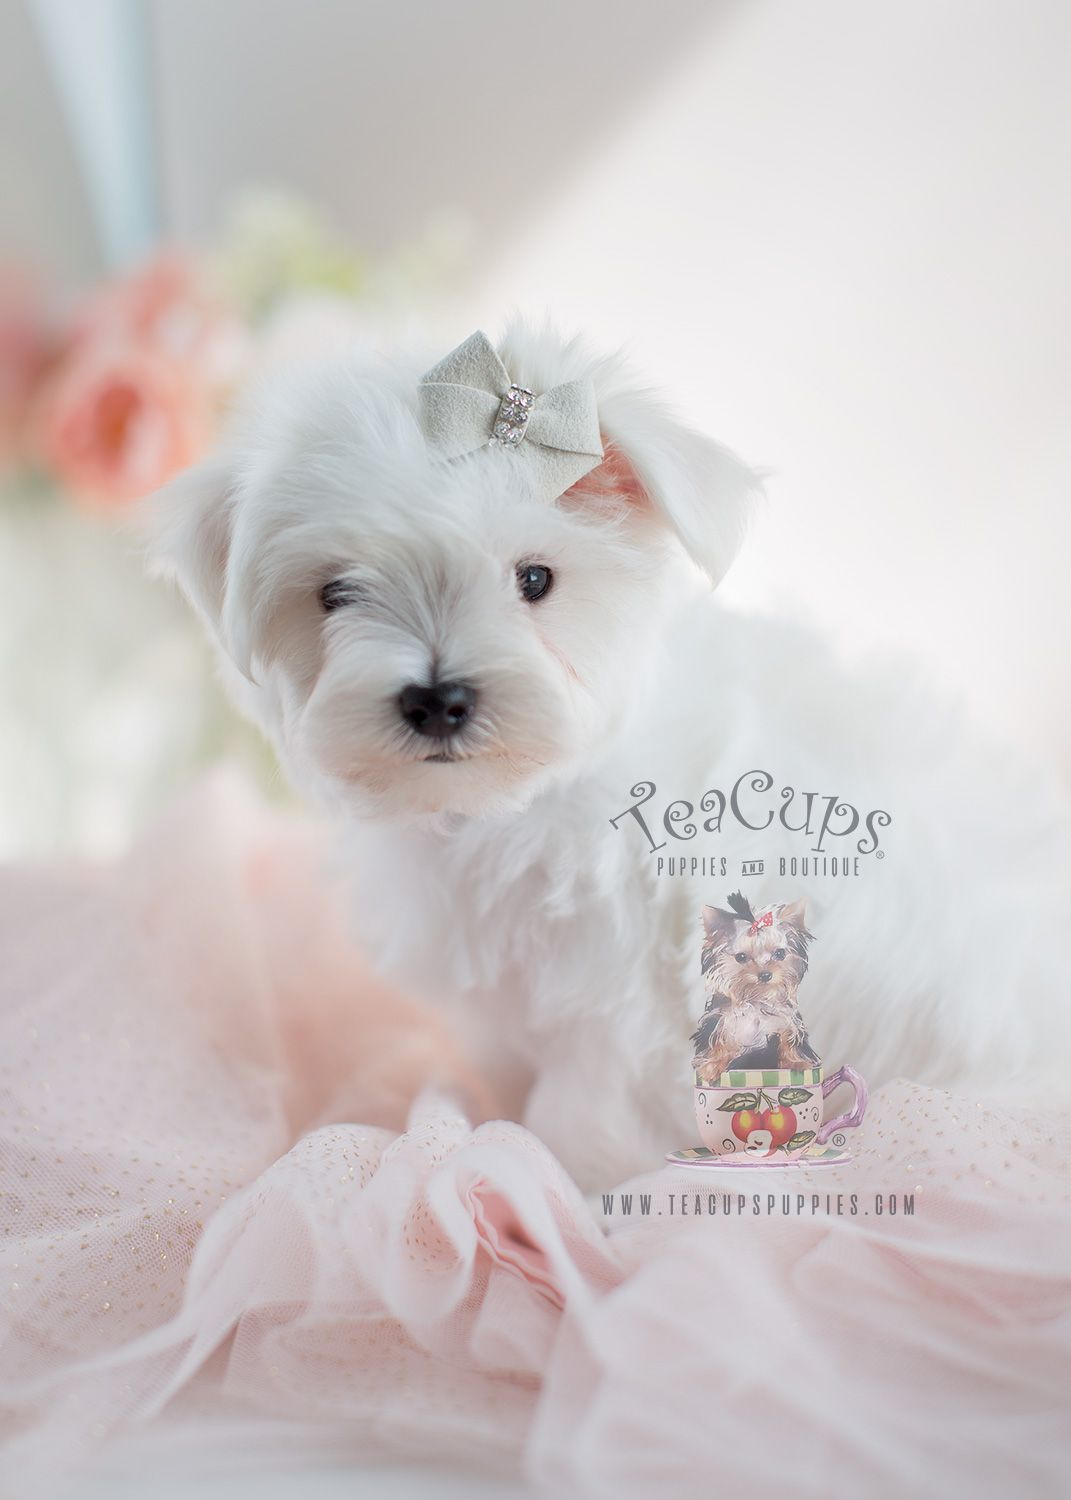 The Cutest Little Shih Tzu Puppies For Sale Teacups Puppies Boutique Teacup Puppies Teacup Puppies For Sale Puppies For Sale